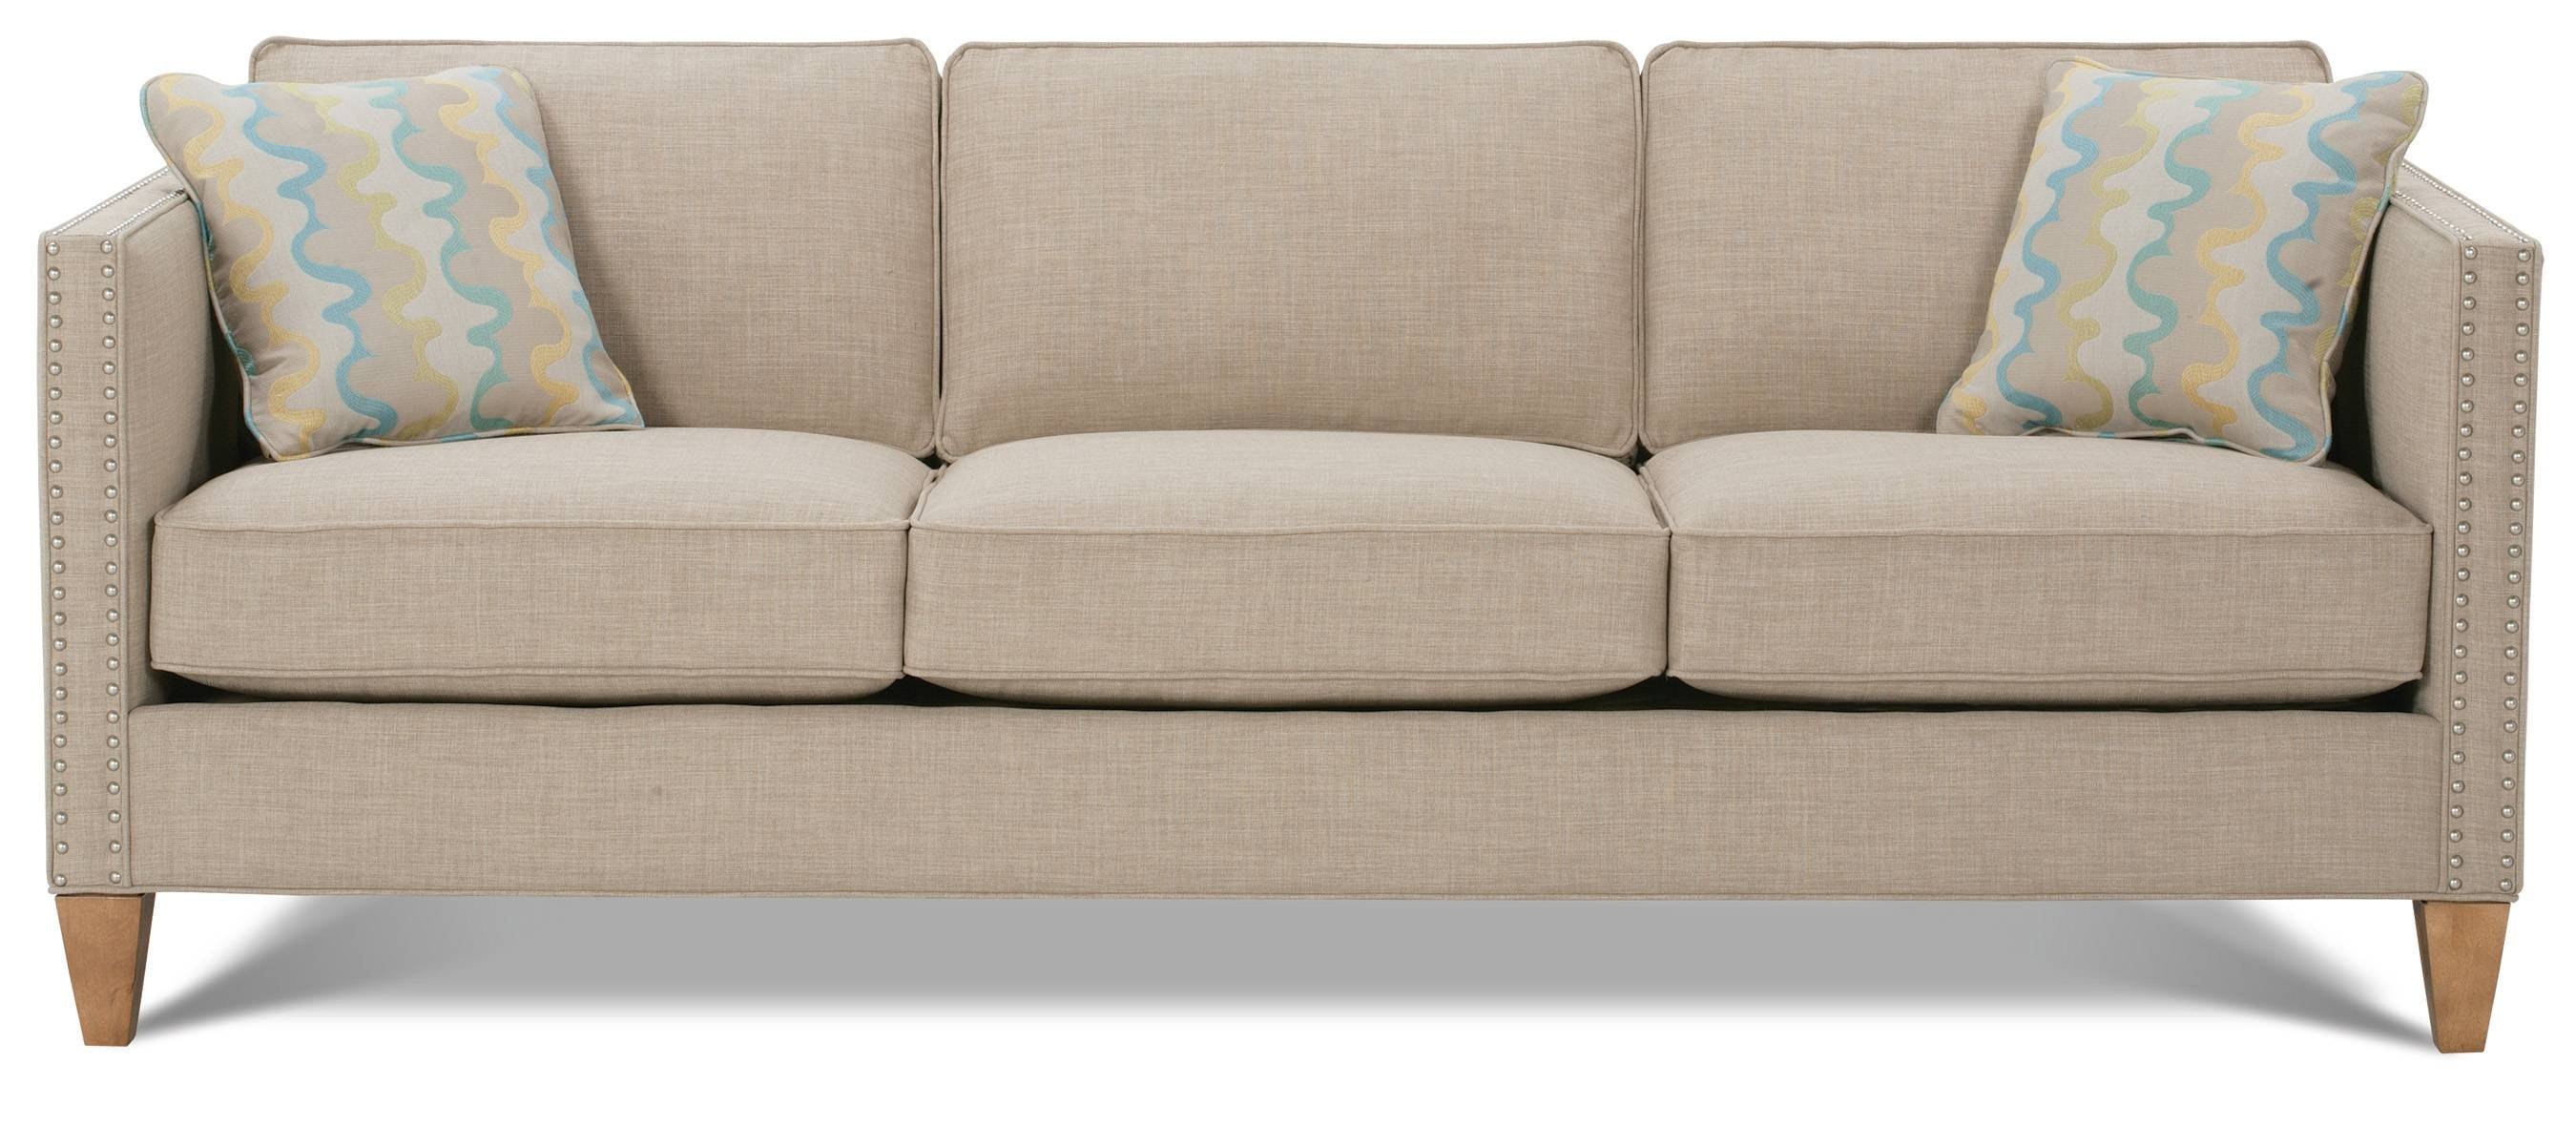 3 Seater Sofas – Thesofa intended for Modern 3 Seater Sofas (Image 2 of 30)